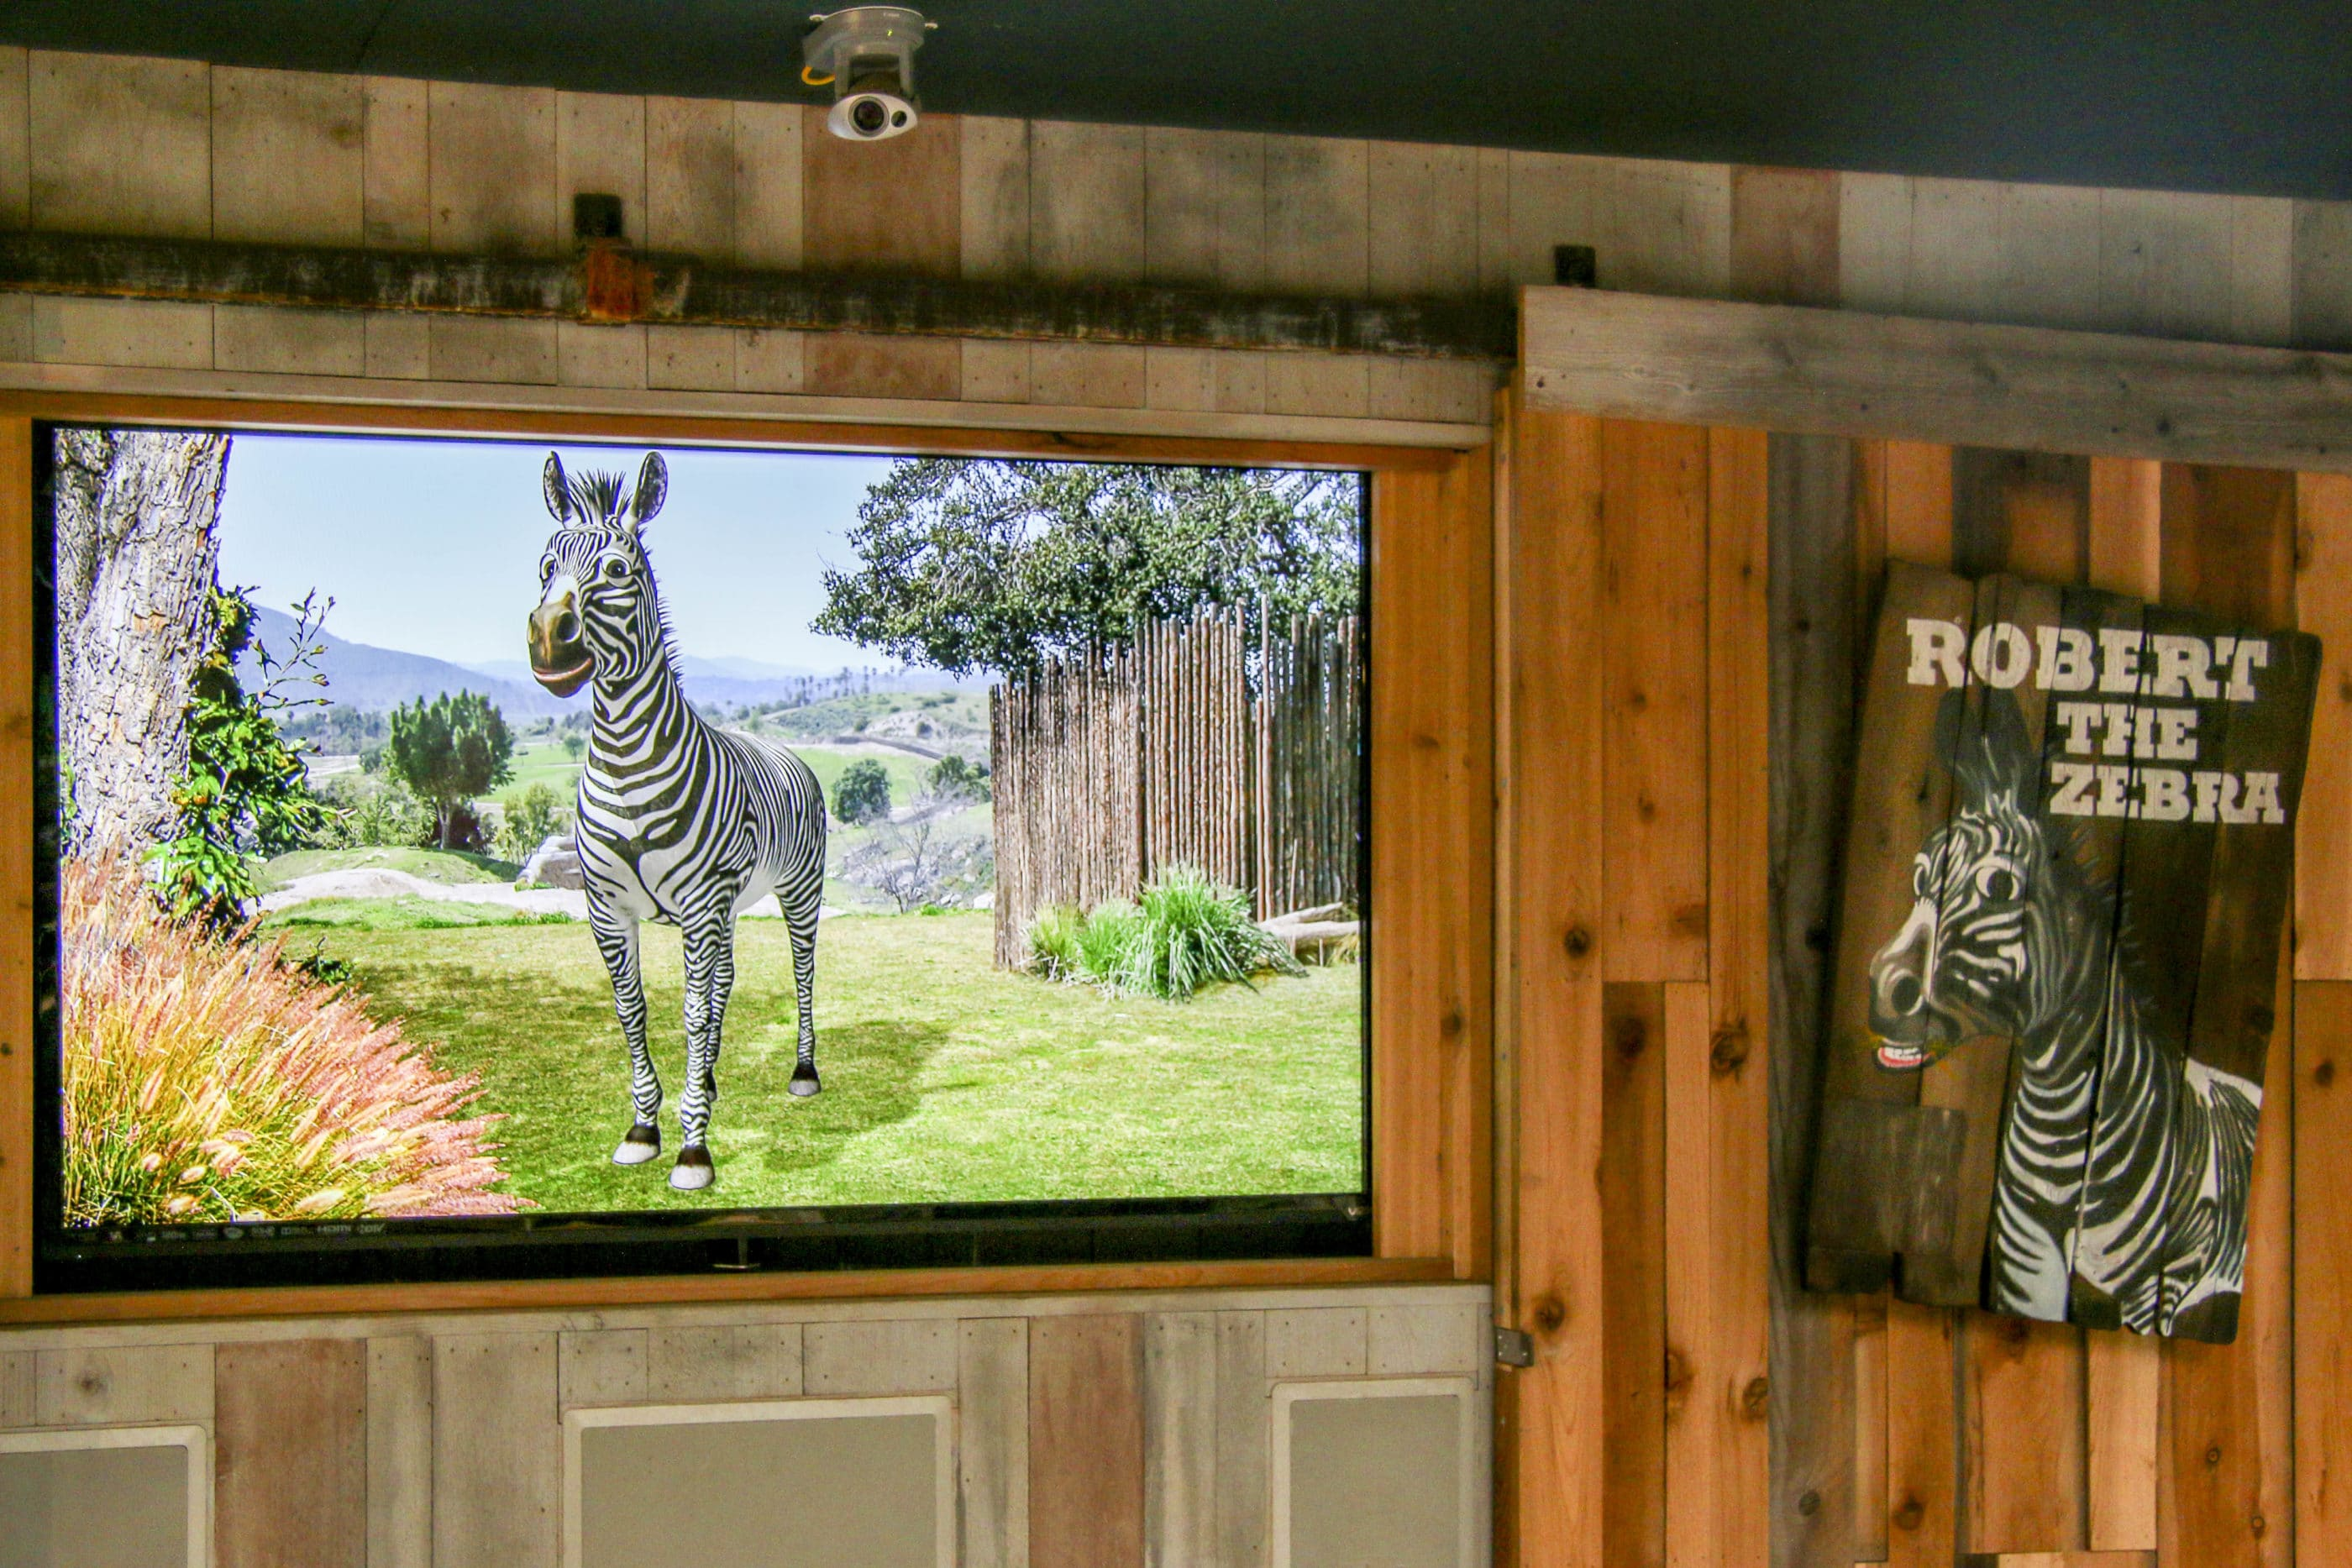 Robert the cartoon zebra on a TV screen is powered by a real human.